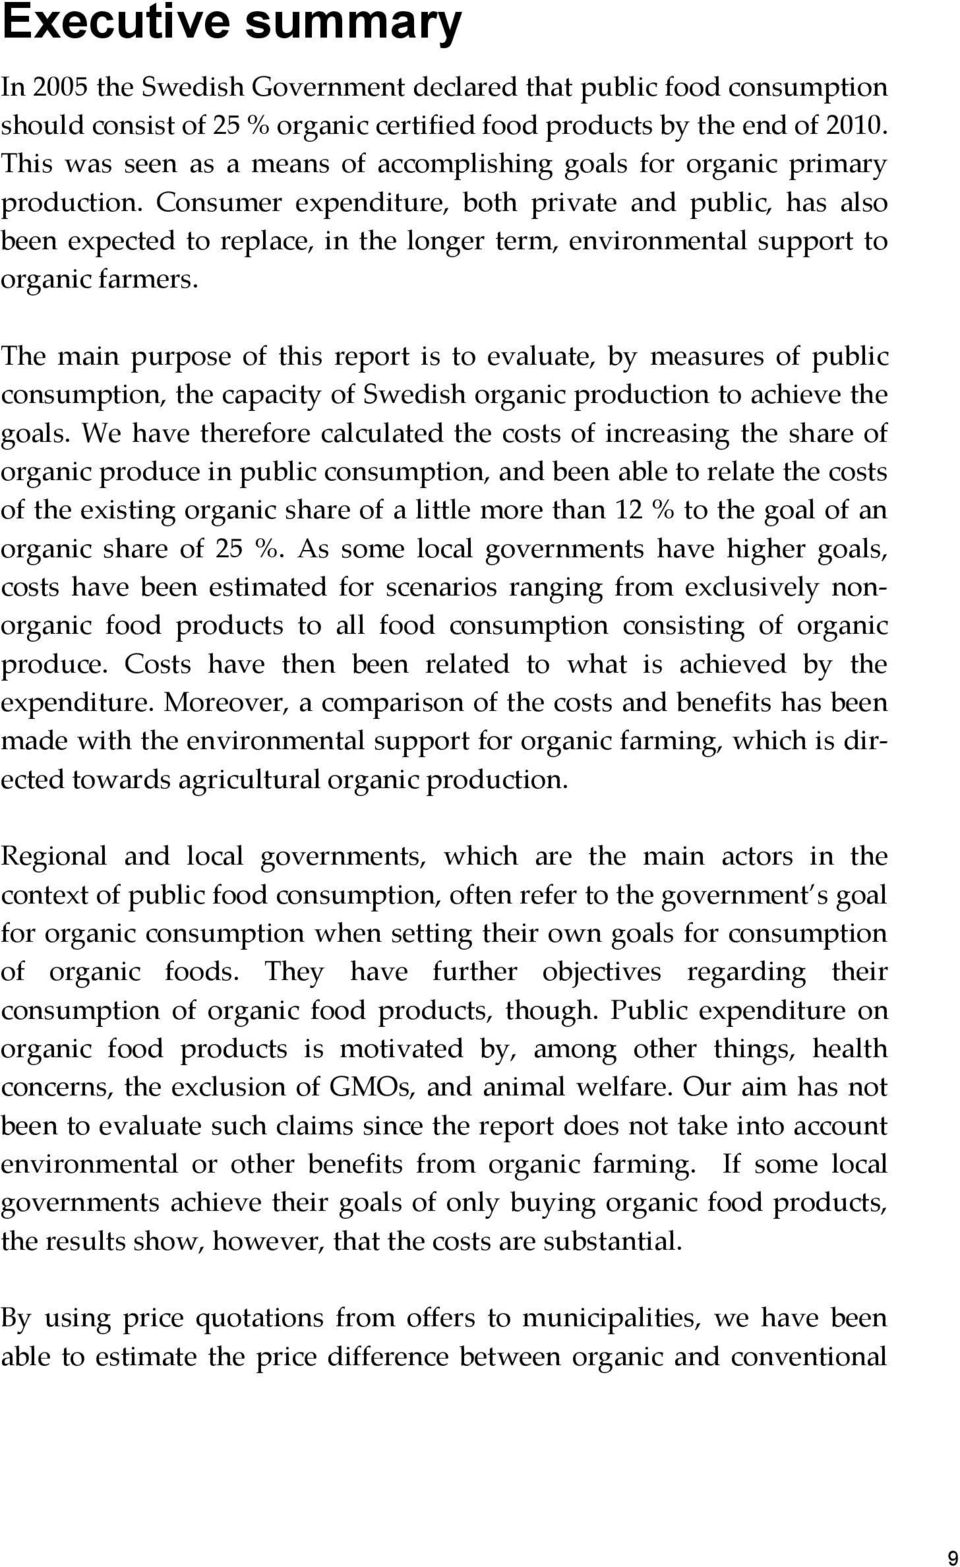 Consumer expenditure, both private and public, has also been expected to replace, in the longer term, environmental support to organic farmers.